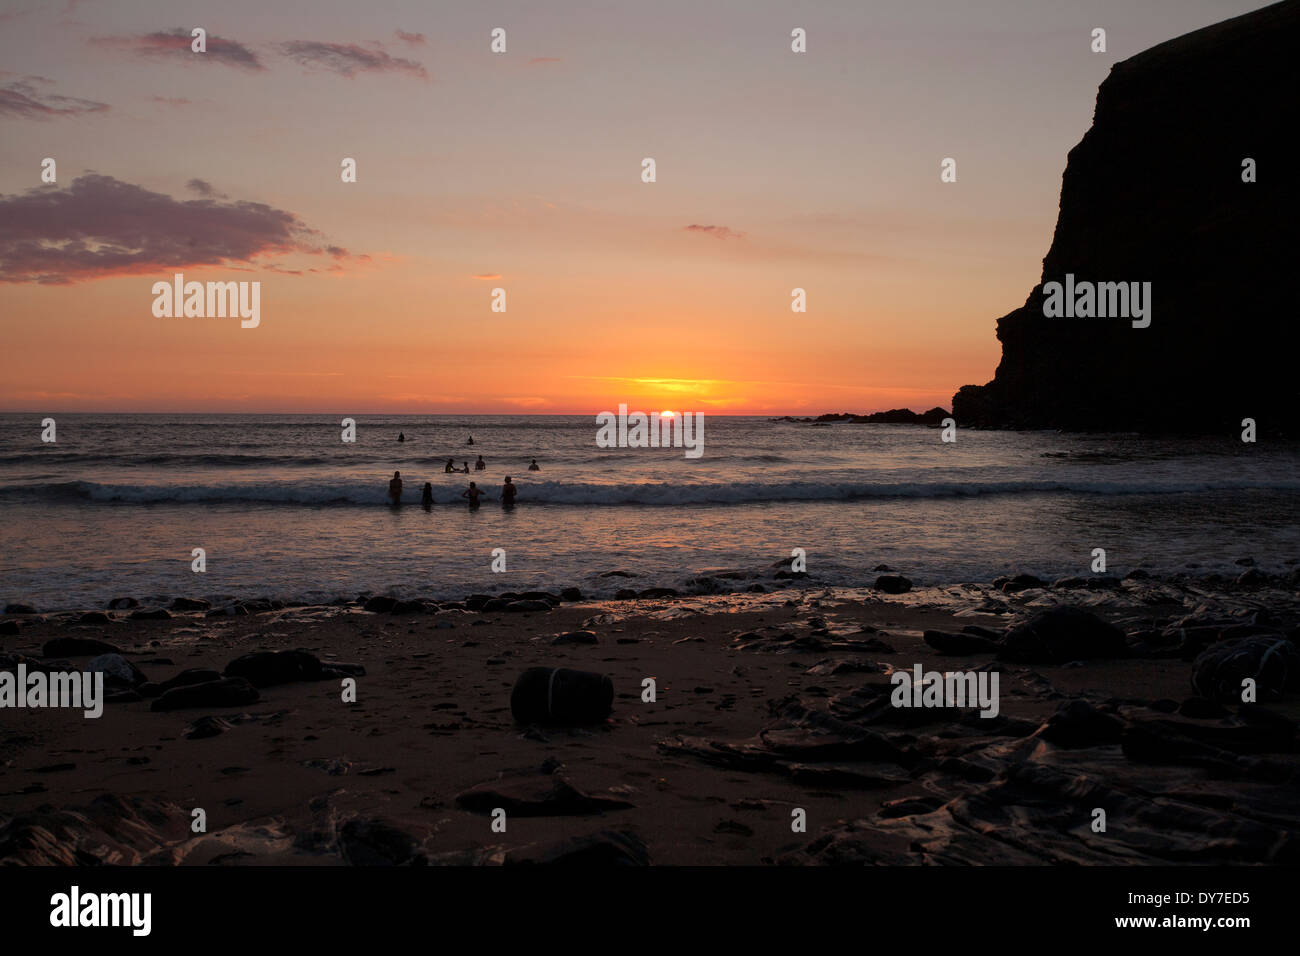 Swimmers and surfers out at sunset in the sea at Crackington Haven - Stock Image